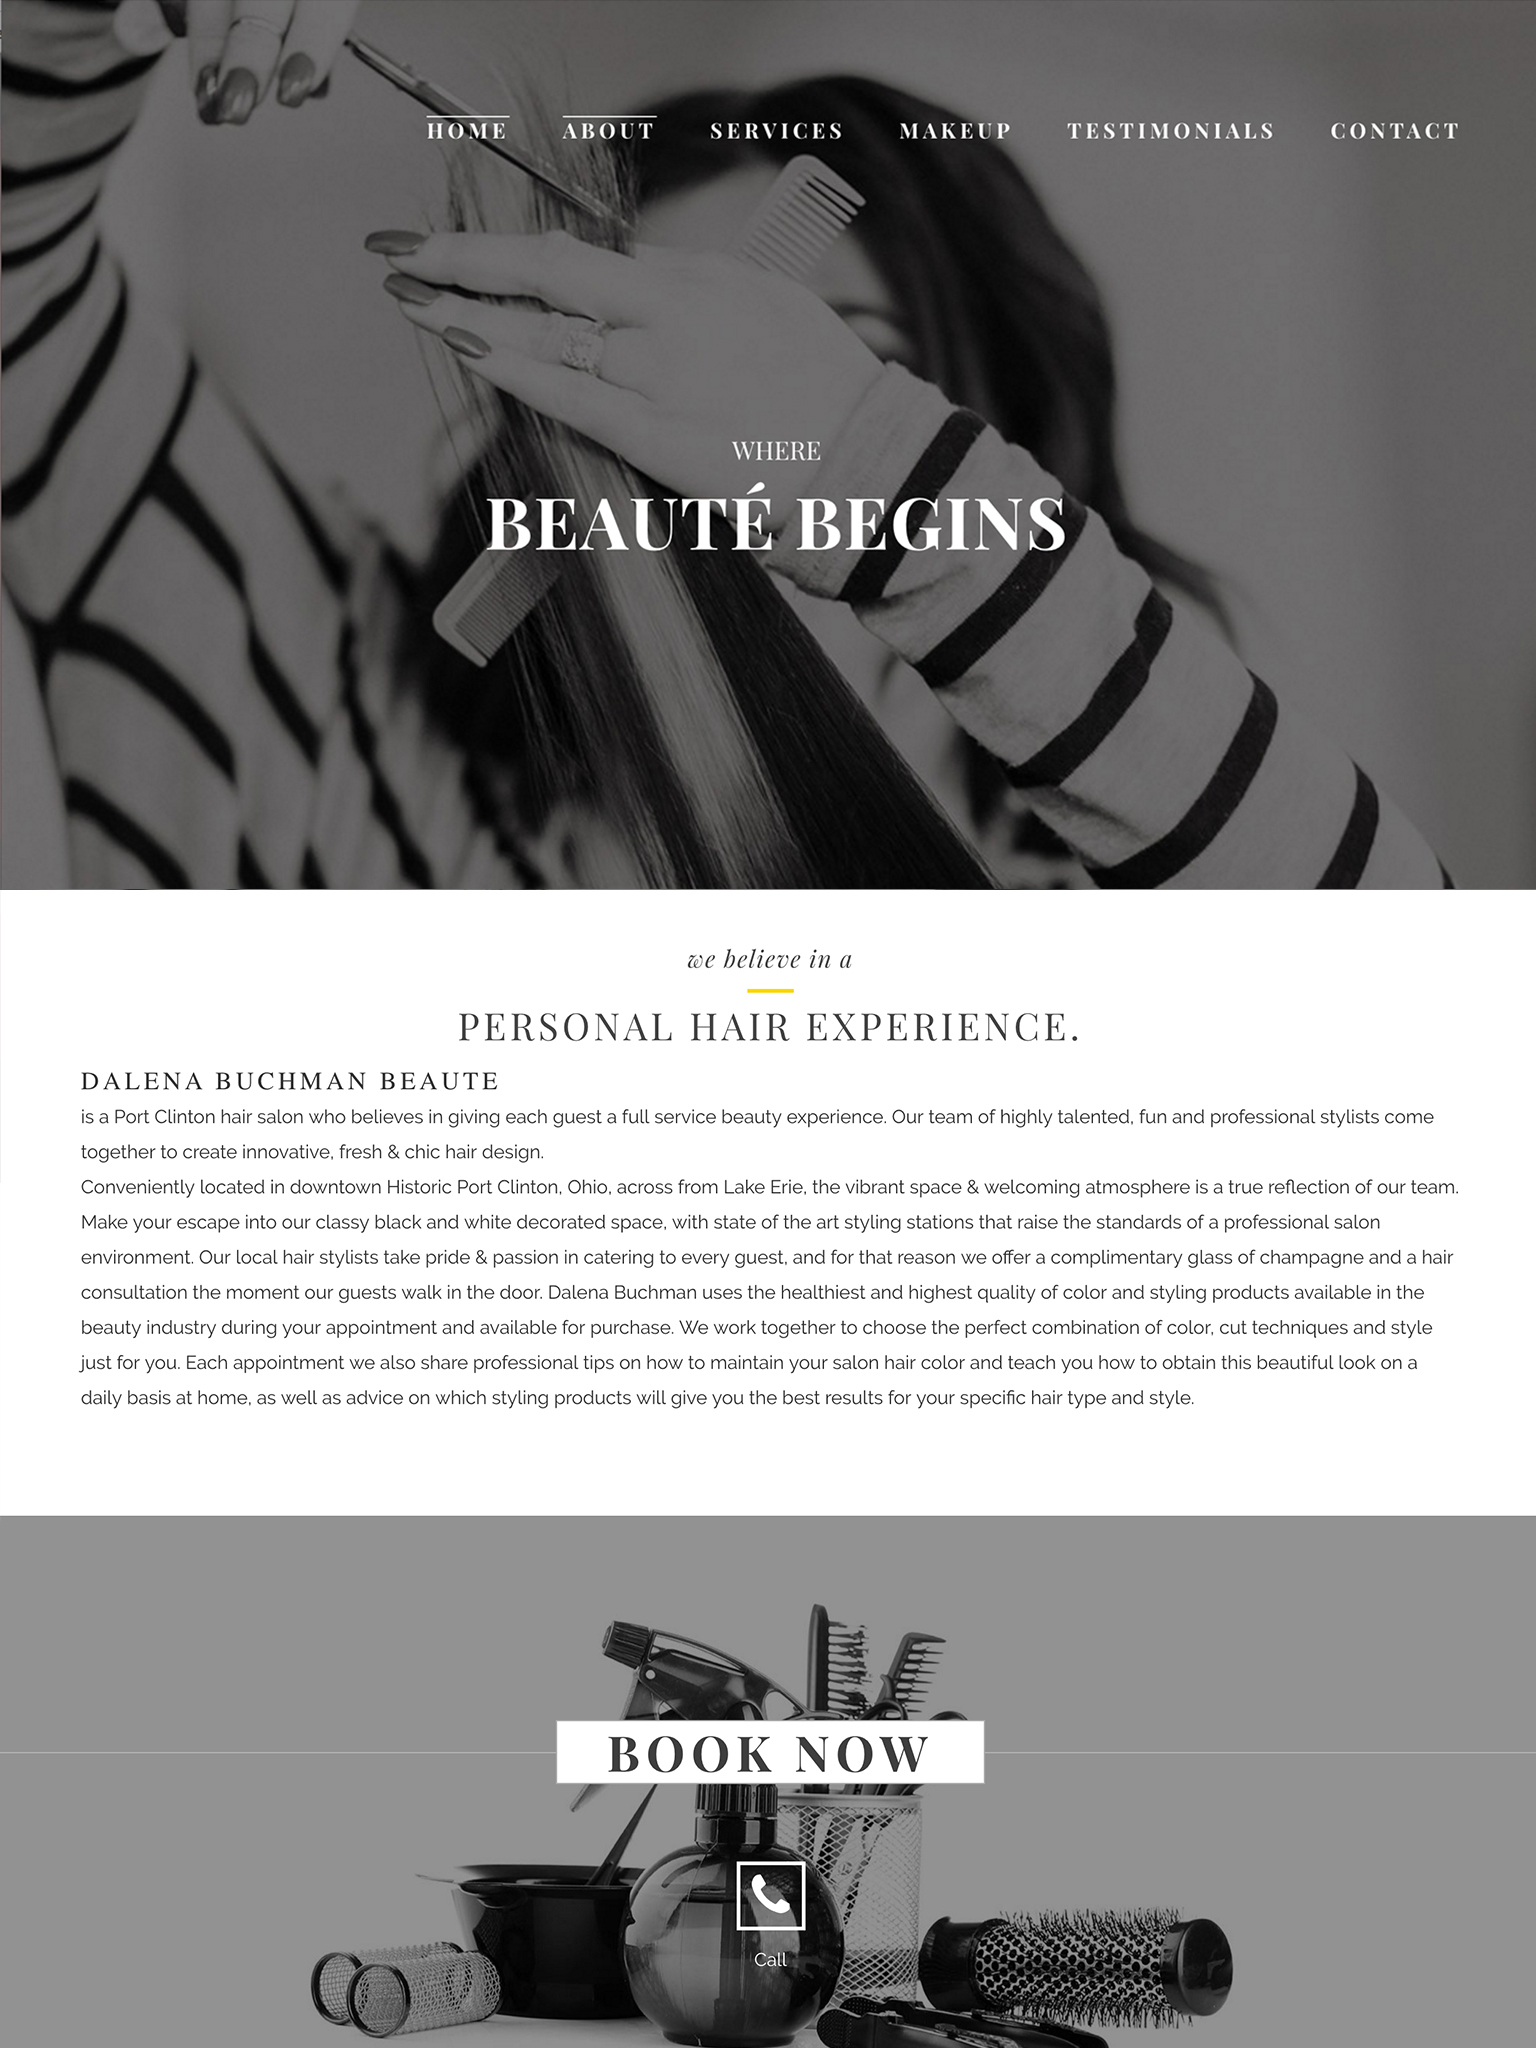 luxury-hair-salon-website-design-nashville-creaitve-hypothesis-2